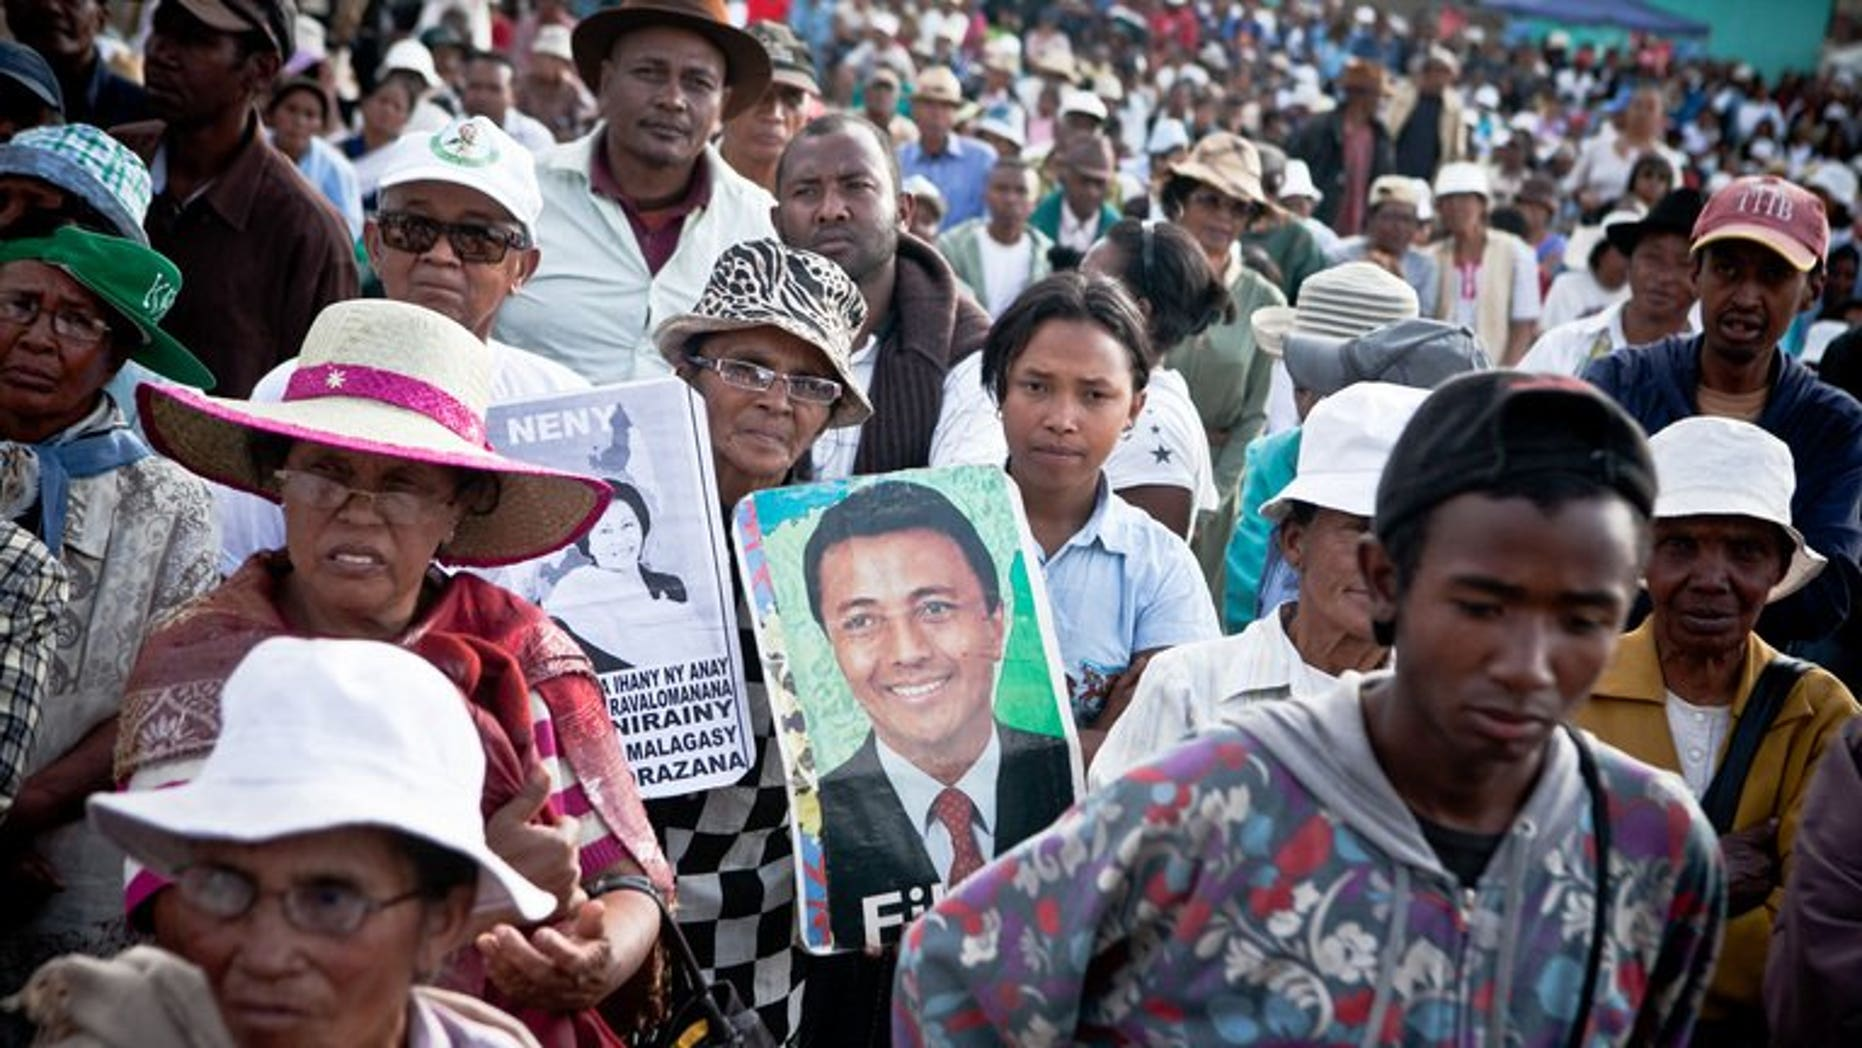 Supporters of ousted Madagascan President Marc Ravalomanana hold their weekly Saturday gathering on September 14, 2014. Madagascar's election campaign opened Tuesday ahead of presidential polls next month, as divisions over replacement candidates plagued the camps of major disqualified politicians.